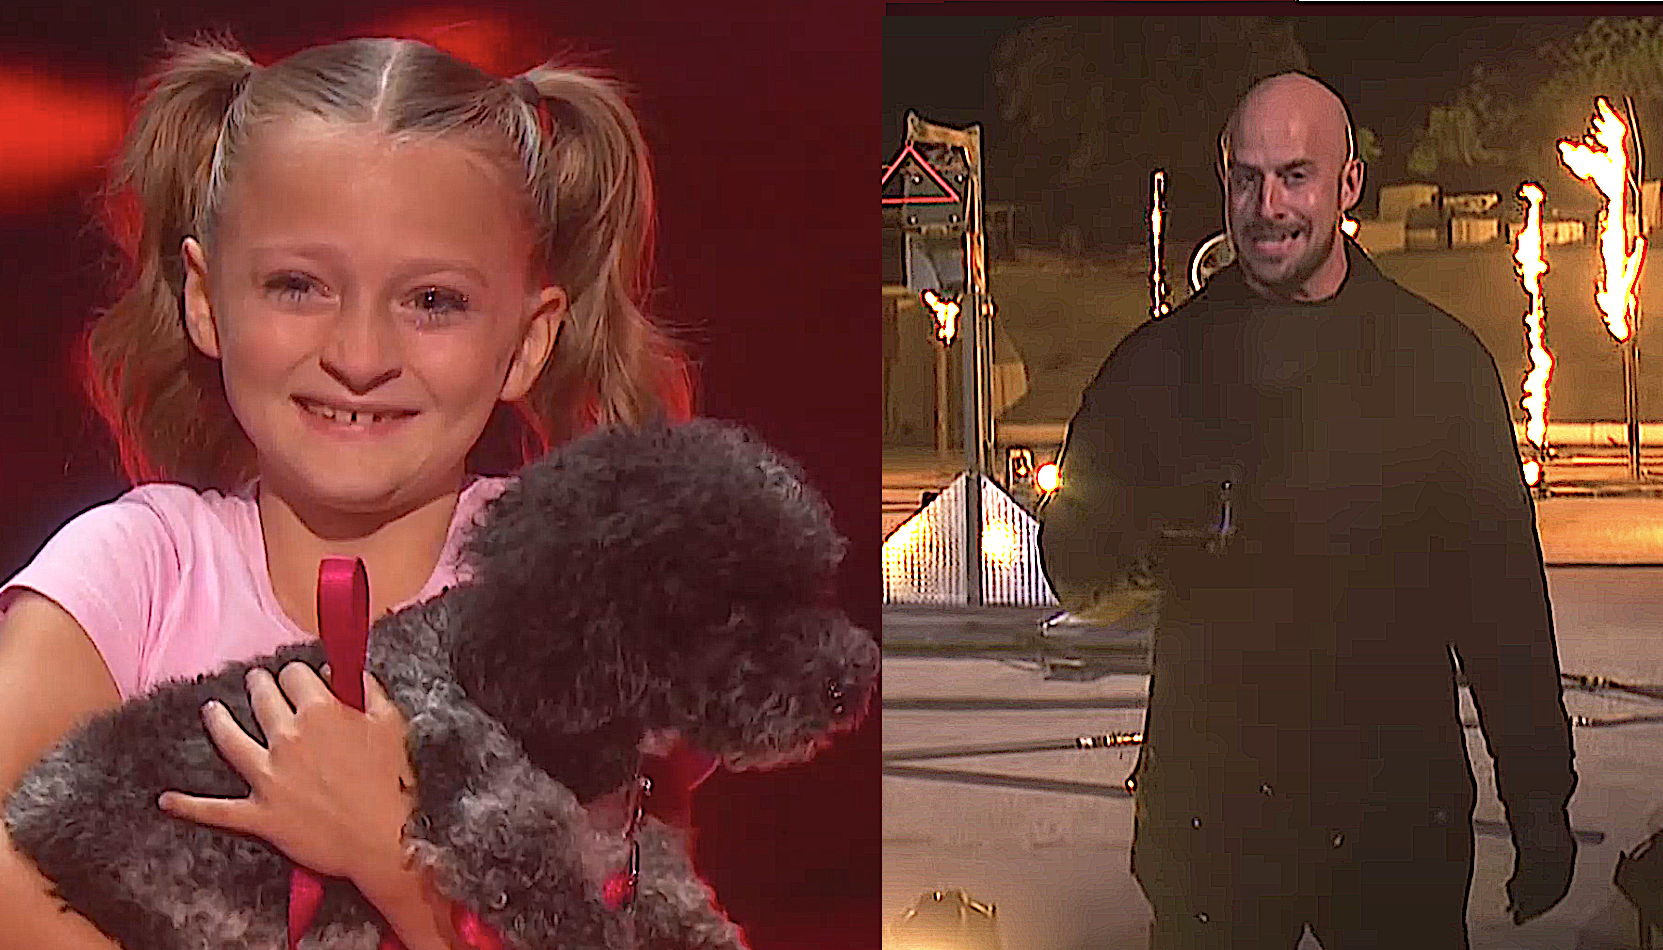 Alexis Brownley & the Puppy Pals and Jonathan Goodwin compete on 'America's Got Talent.' (Photos: NBC)